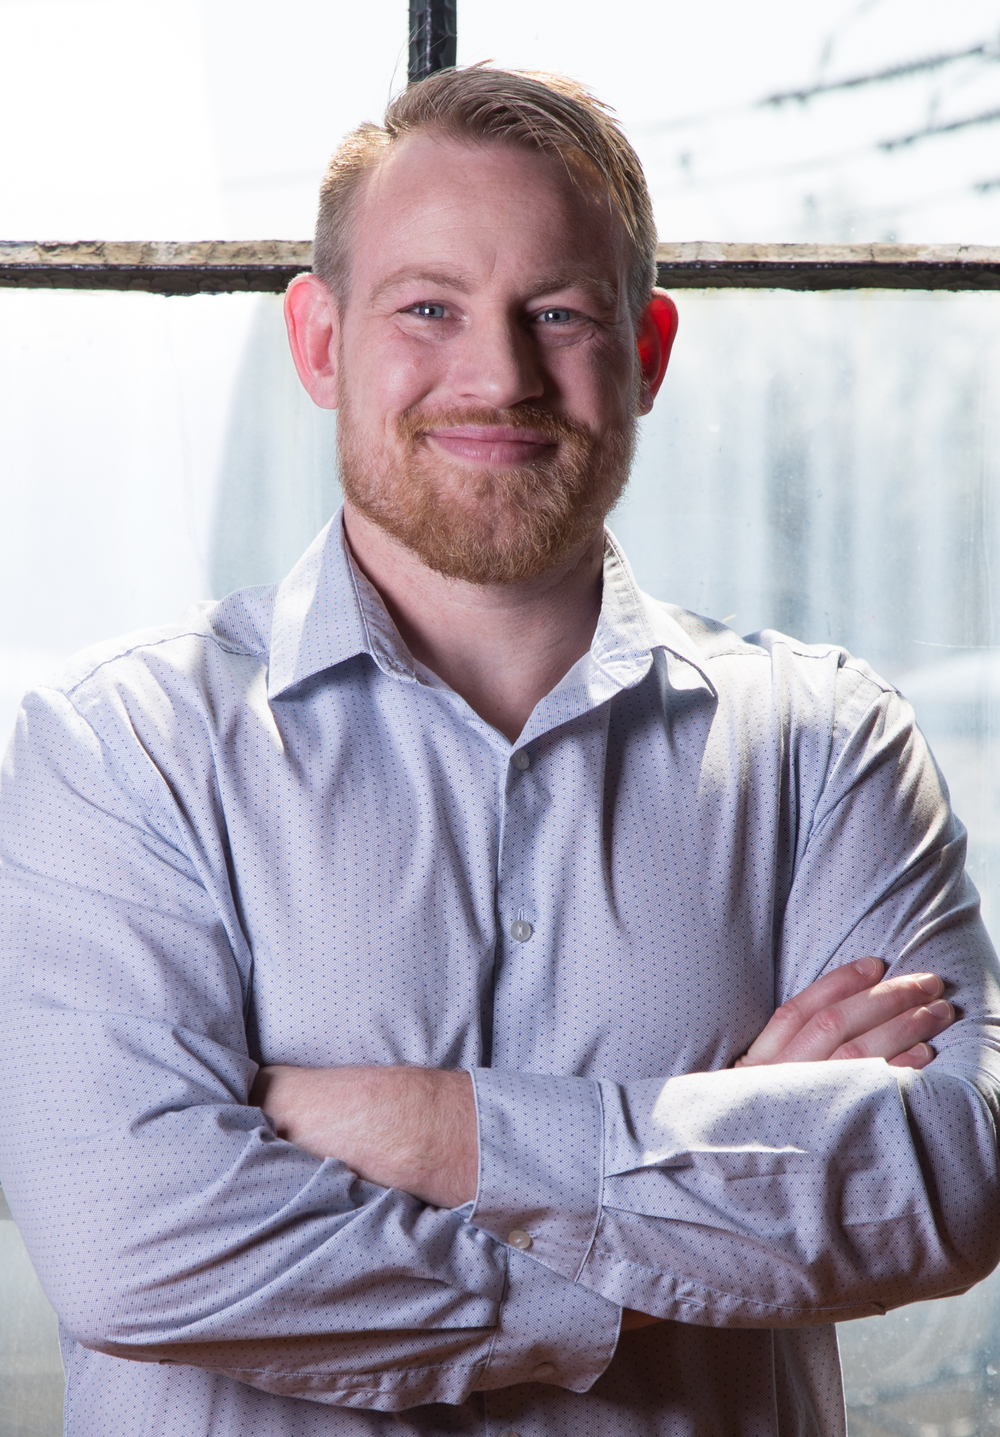 Joshua Hoke is the CEO of Nowall USA, Nowall's US Subsidiary. After serving in the U.S. Navy for five years, Josh returned home to Lexington to get his degree in political science from the University of Kentucky. He worked in sales and marketing before forming Nowall USA with Emily in early 2016.